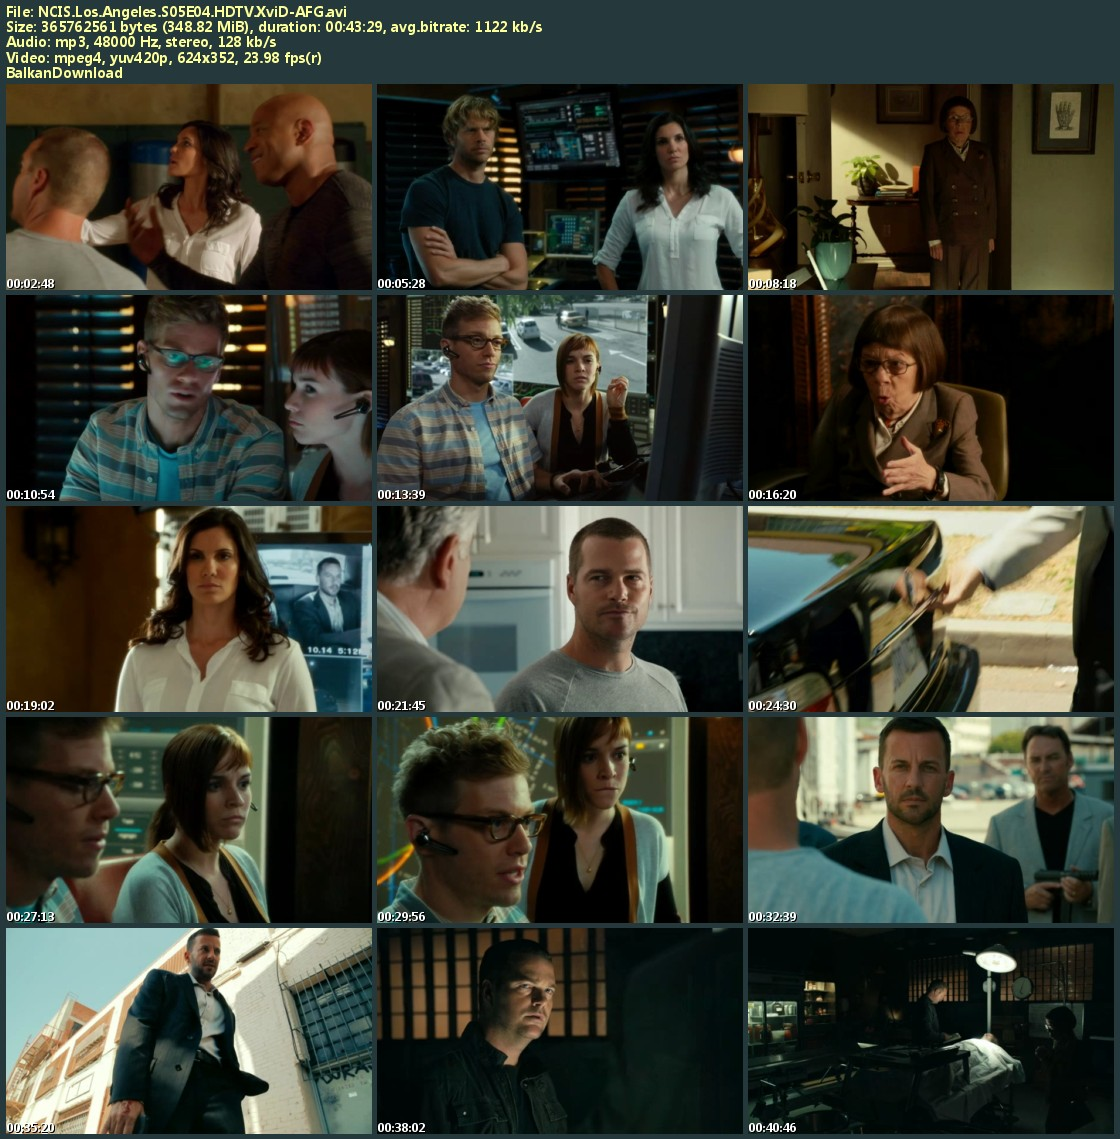 ncis.los.angeles.s05e2rs7m.jpg